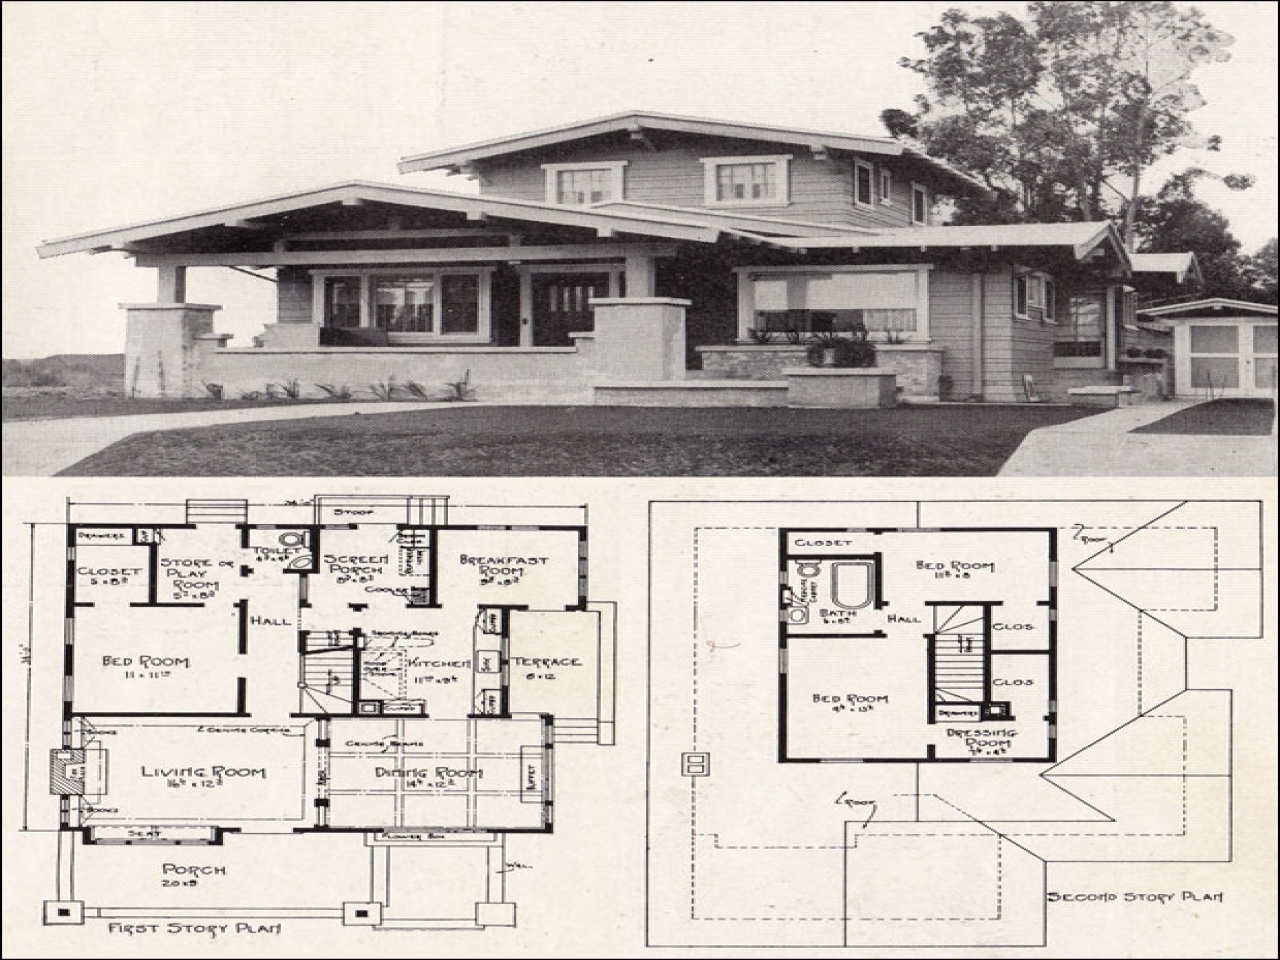 Airplane bungalow house plans historic bungalow house plan for Airplane bungalow house plans